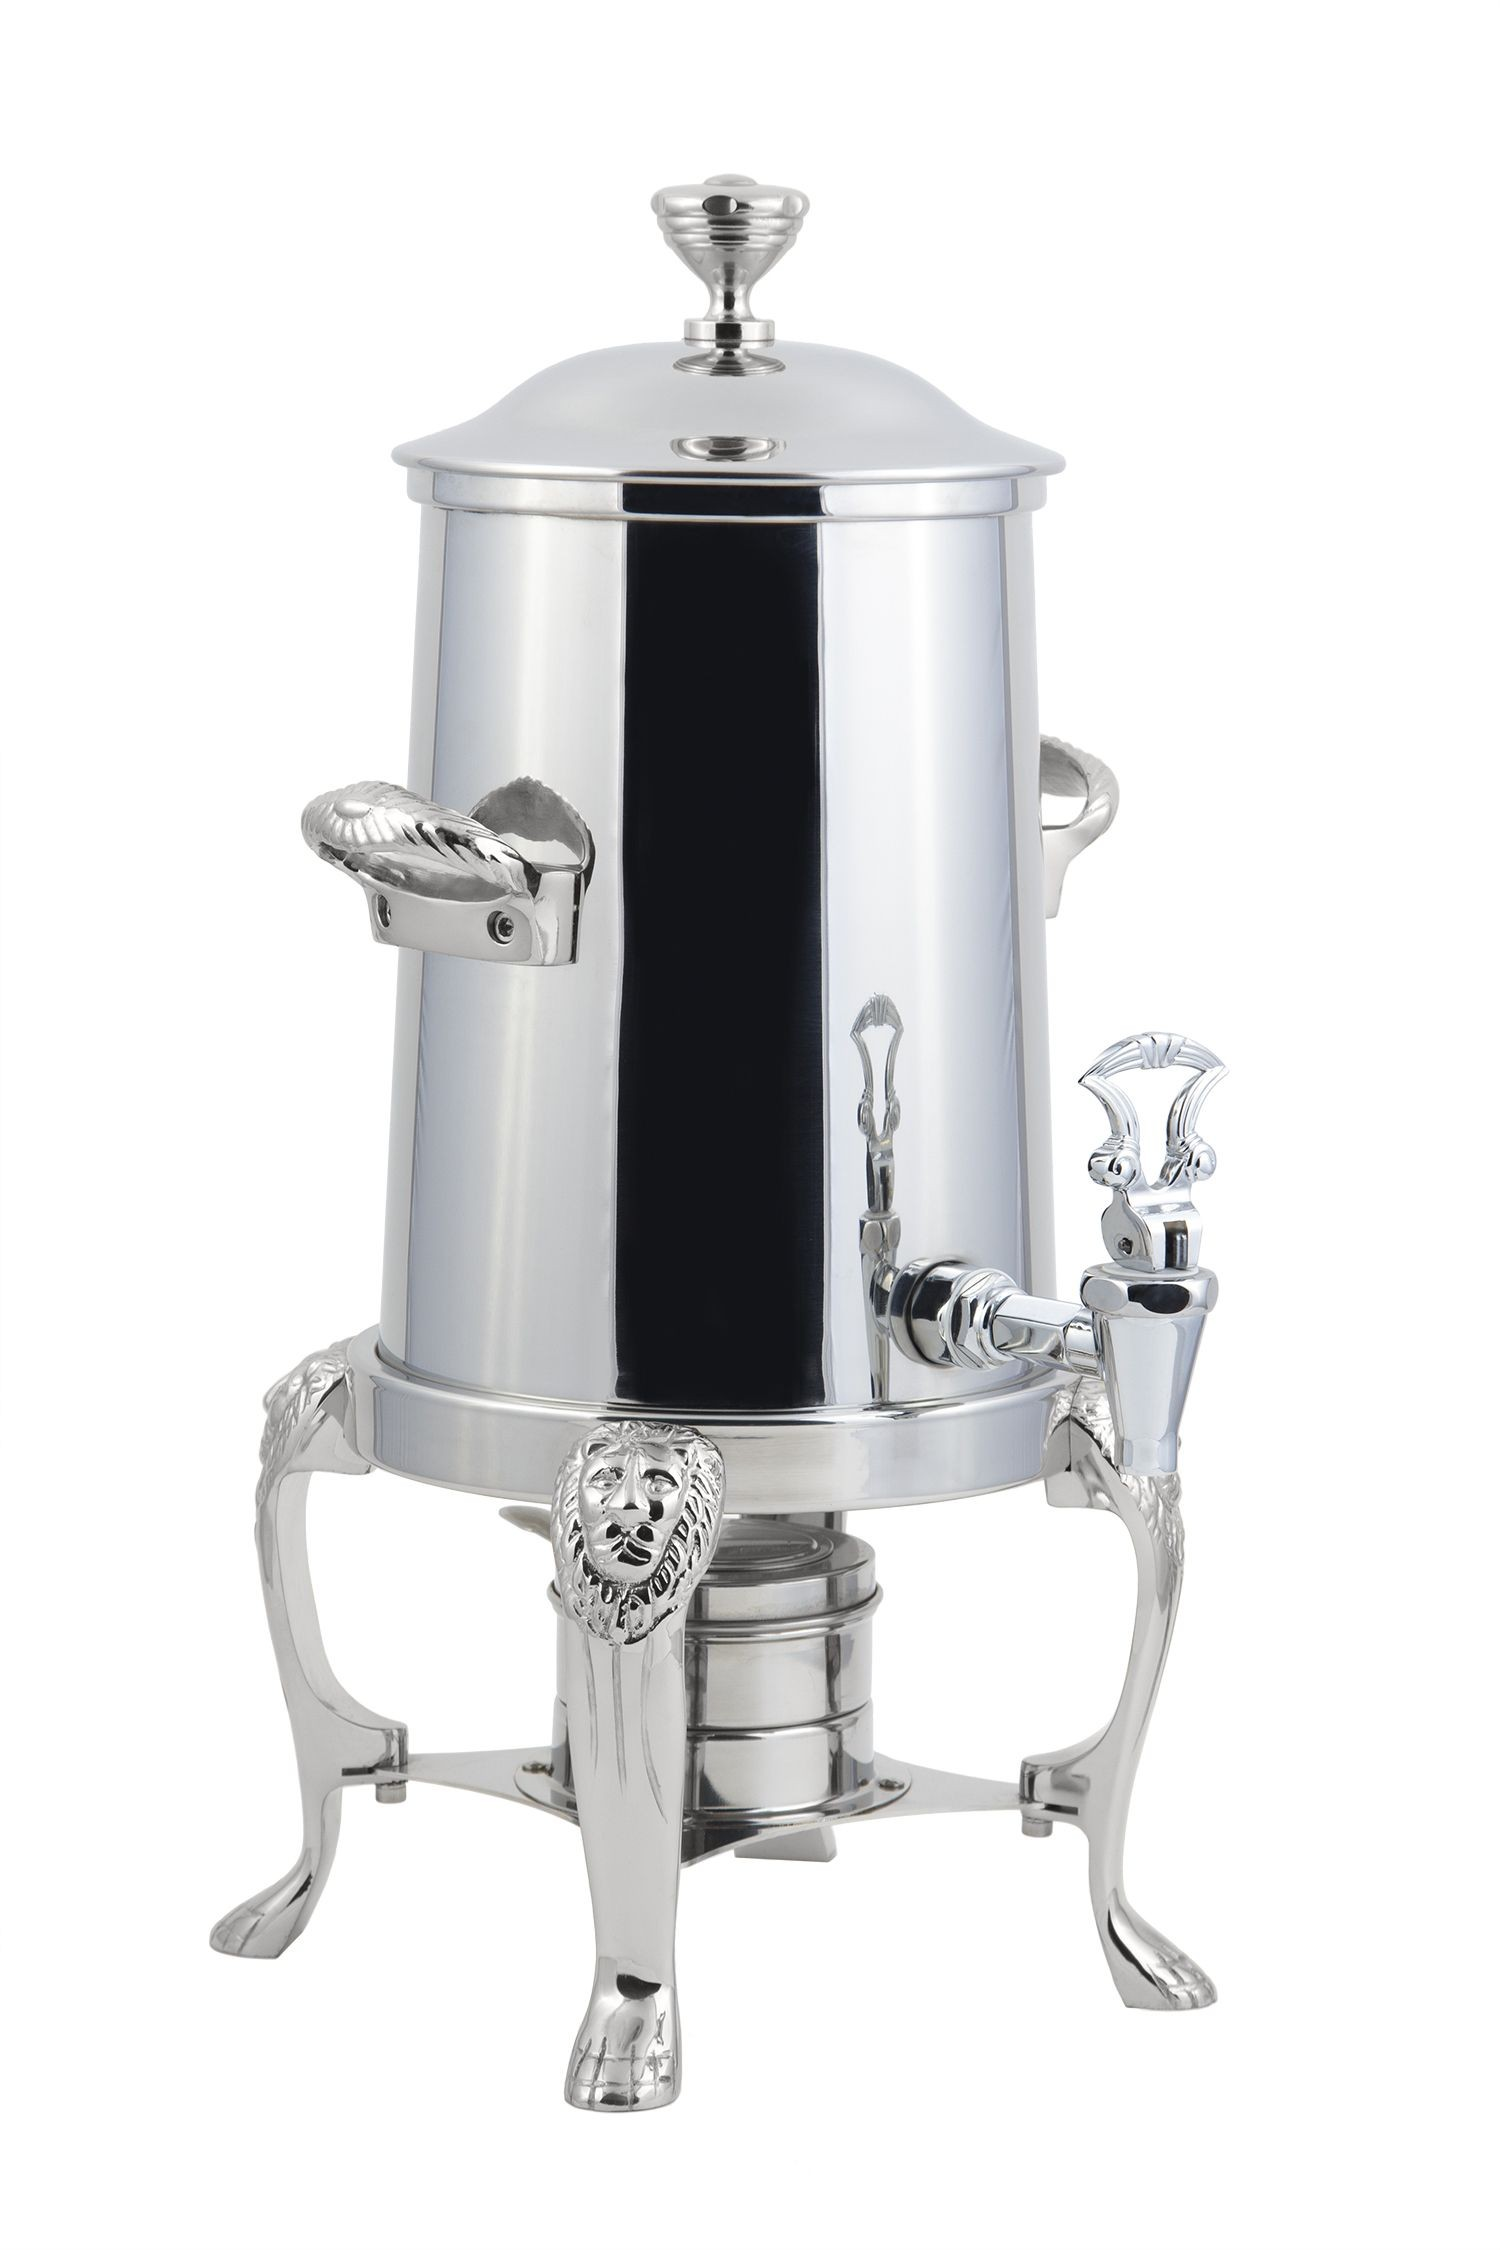 Bon Chef 48101C Lion Non-Insulated Coffee Urn with Chrome Trim, 2 Gallon